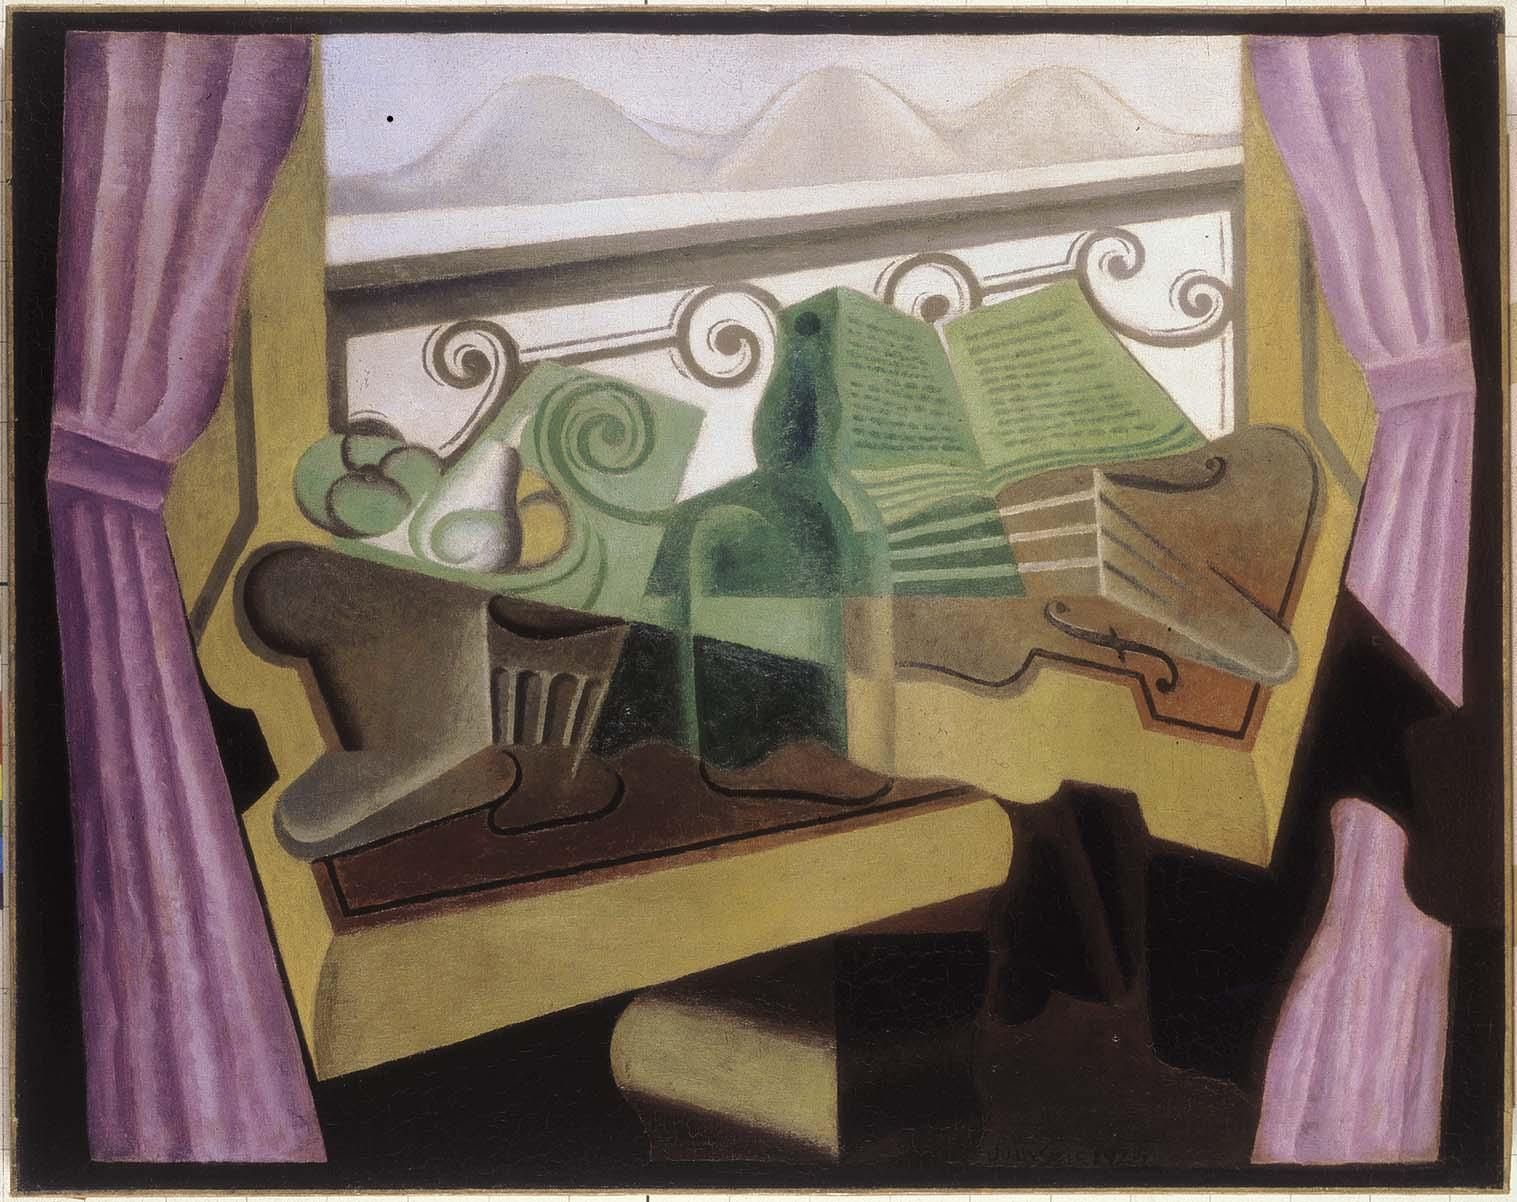 Juan Gris on ArtStack - art online